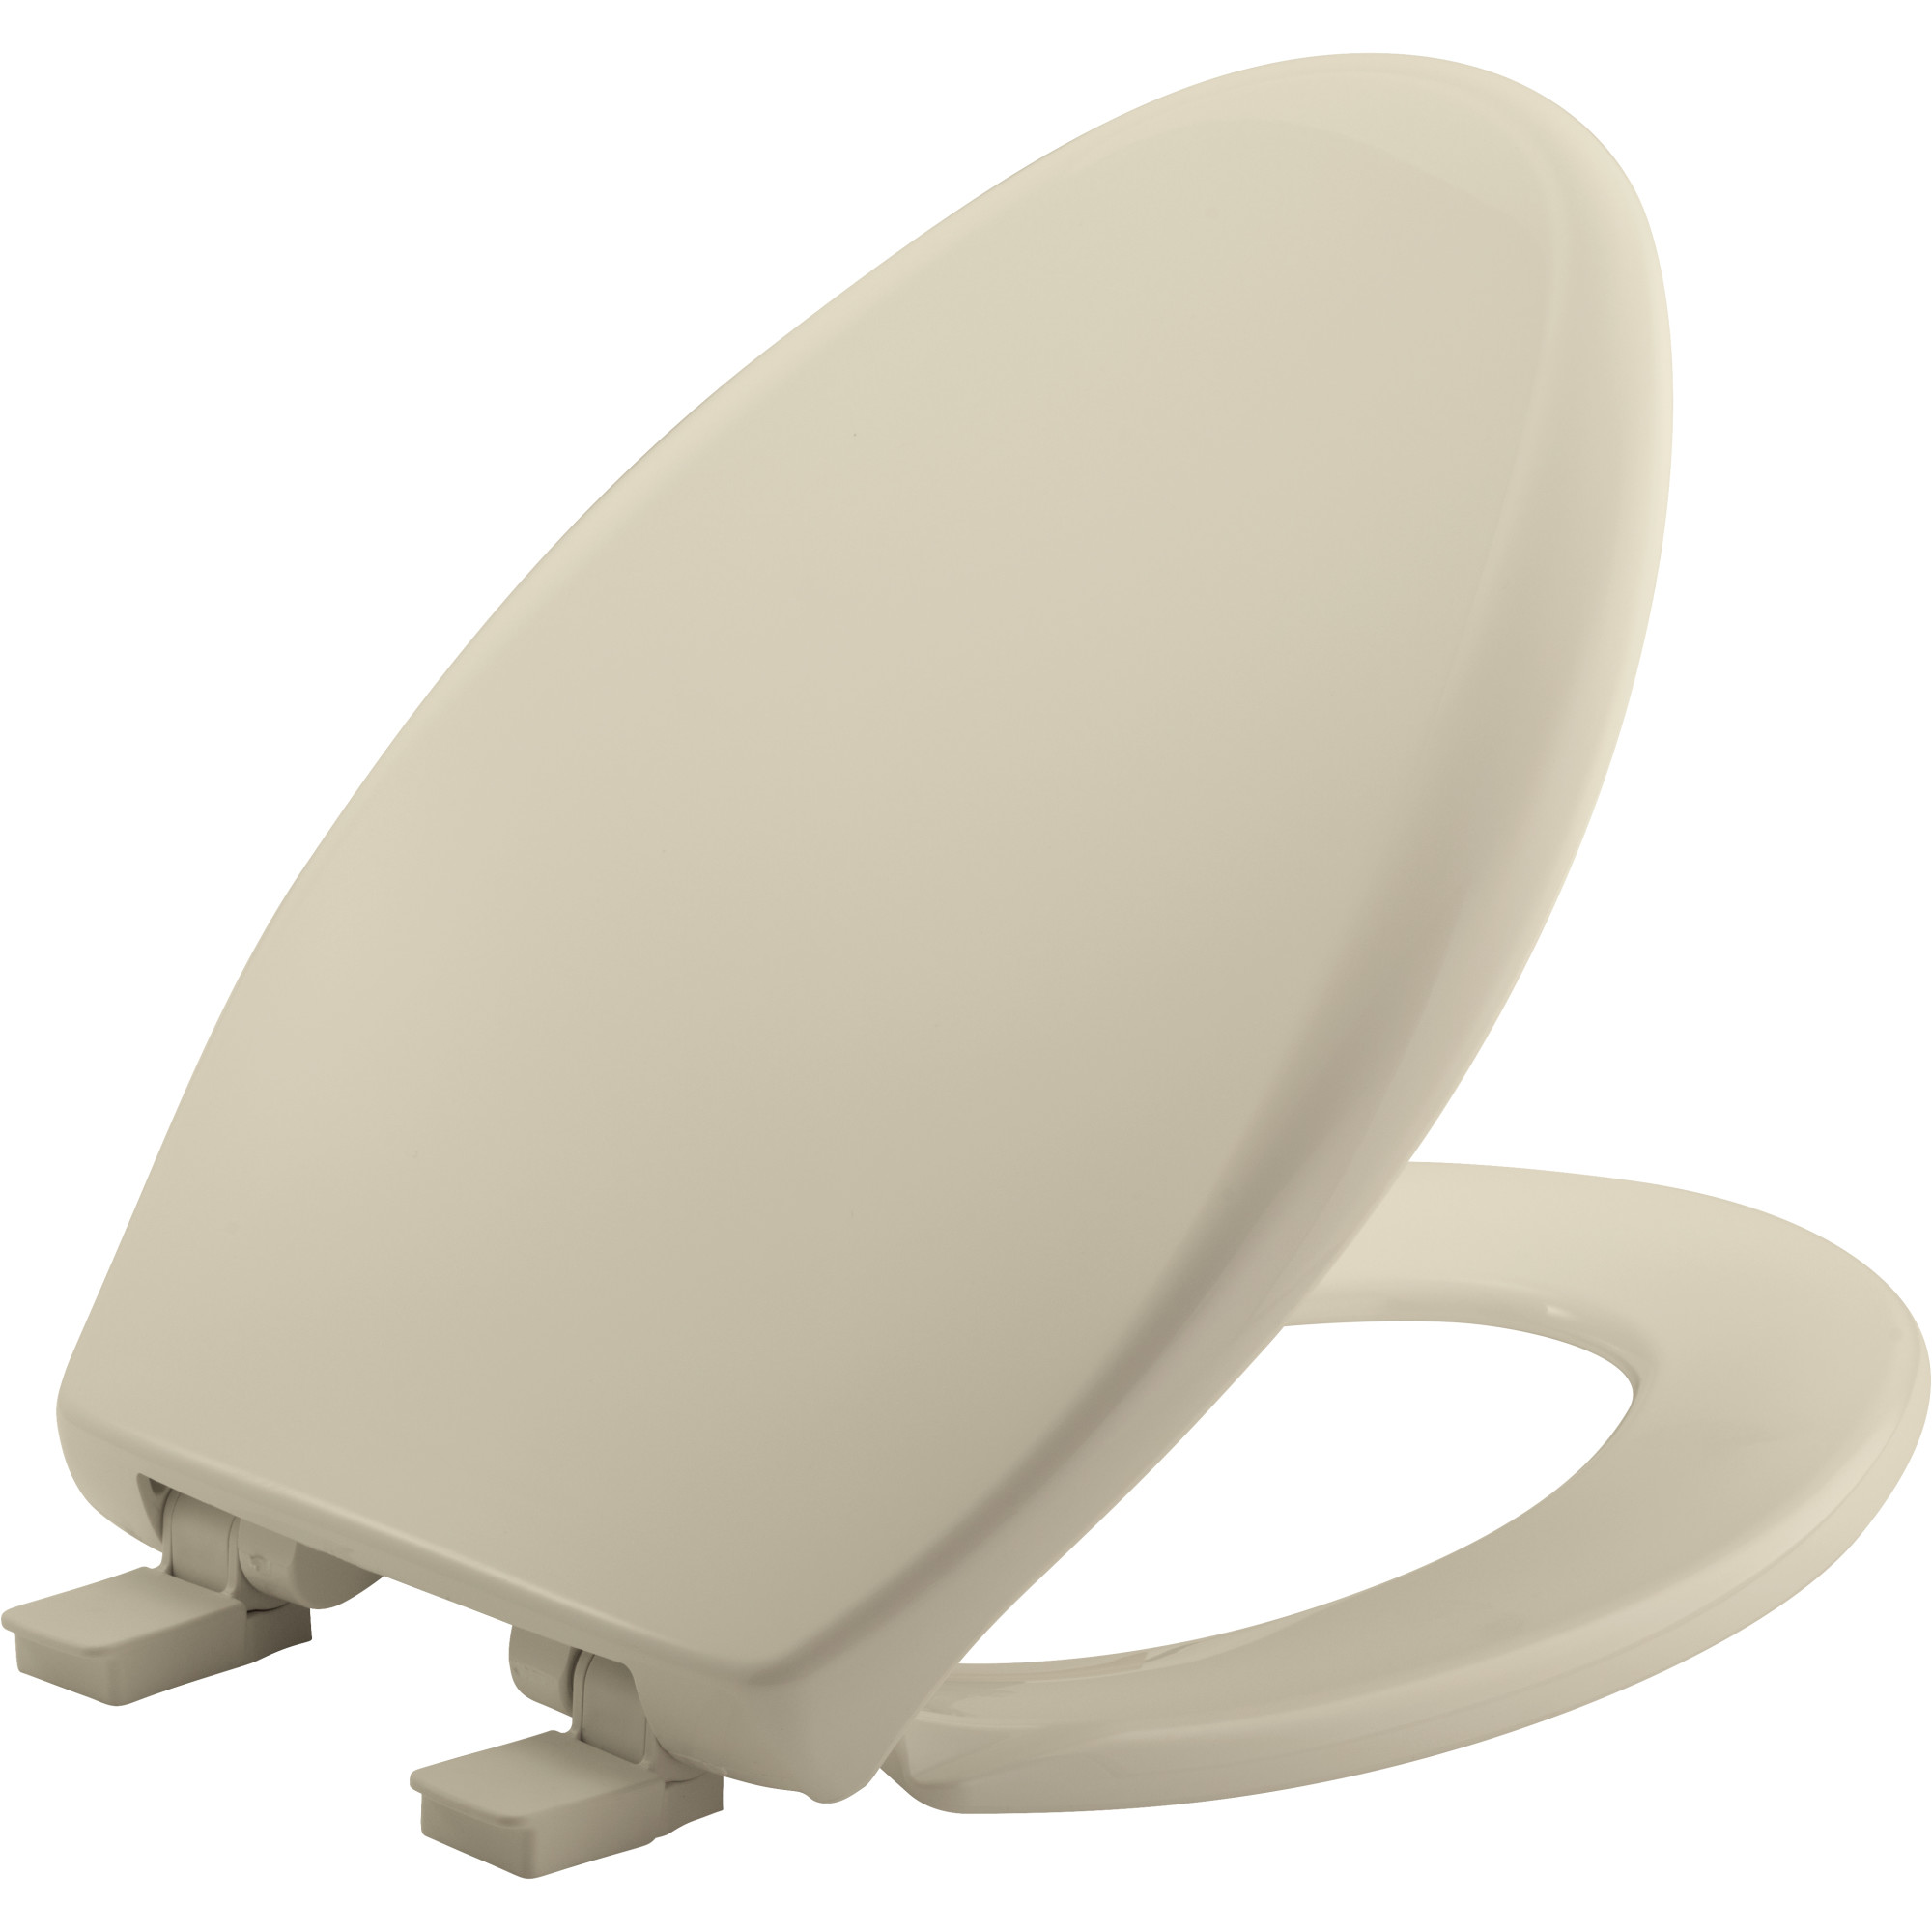 Awesome Details About Bemis 1200E4 Affinity Elongated Closed Front Toilet Seat With Soft Close Bone Caraccident5 Cool Chair Designs And Ideas Caraccident5Info